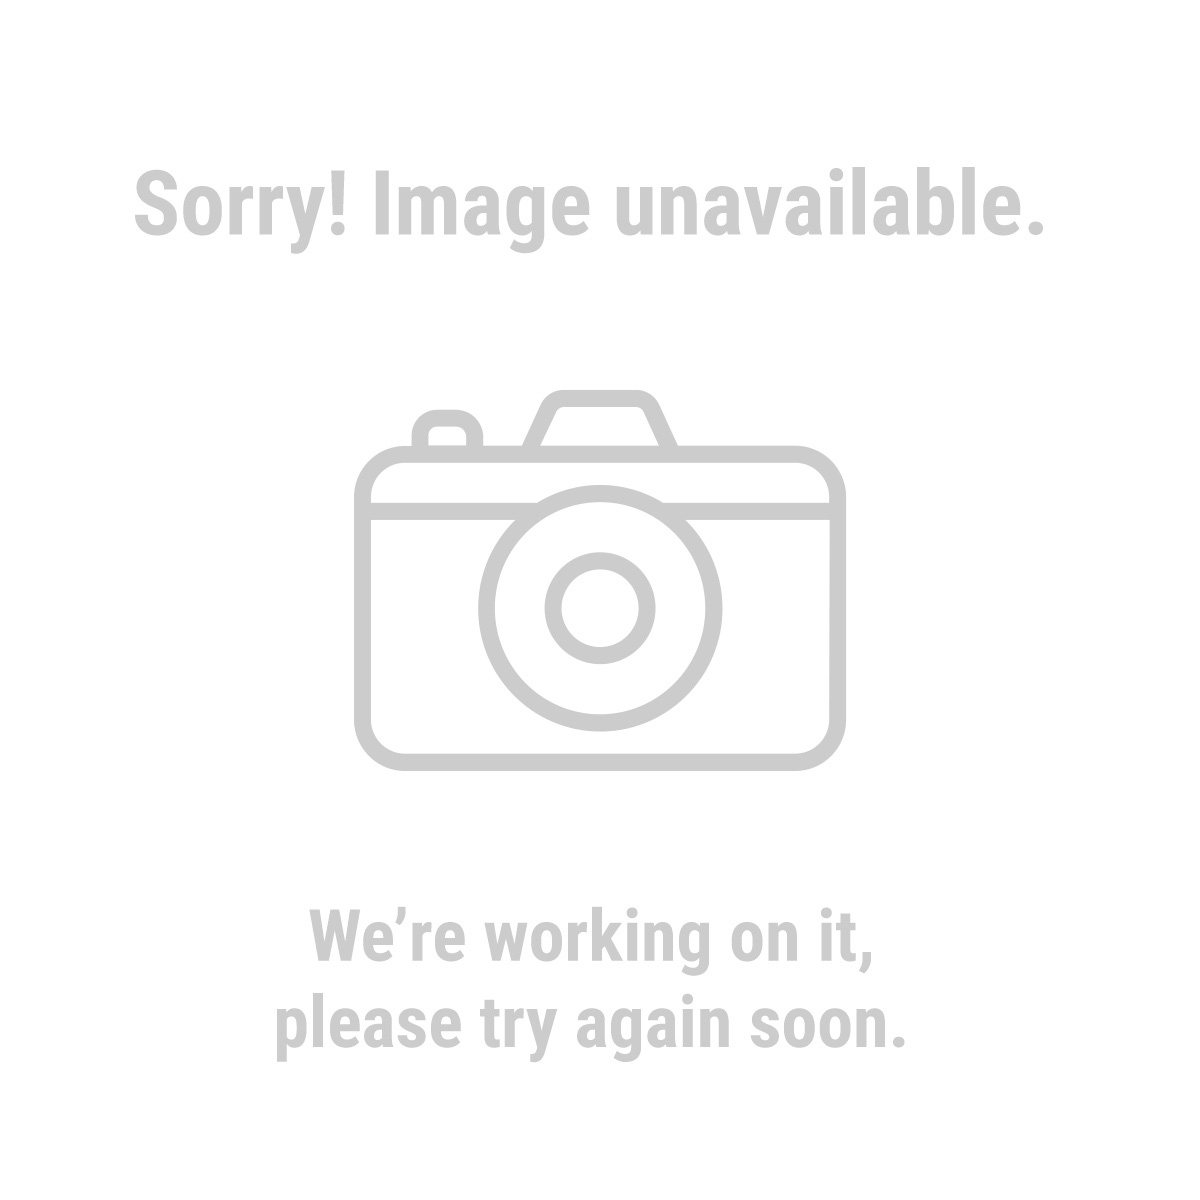 Warrior 61243 4 in., 24 Tooth Carbide Tipped Circular Saw Blade